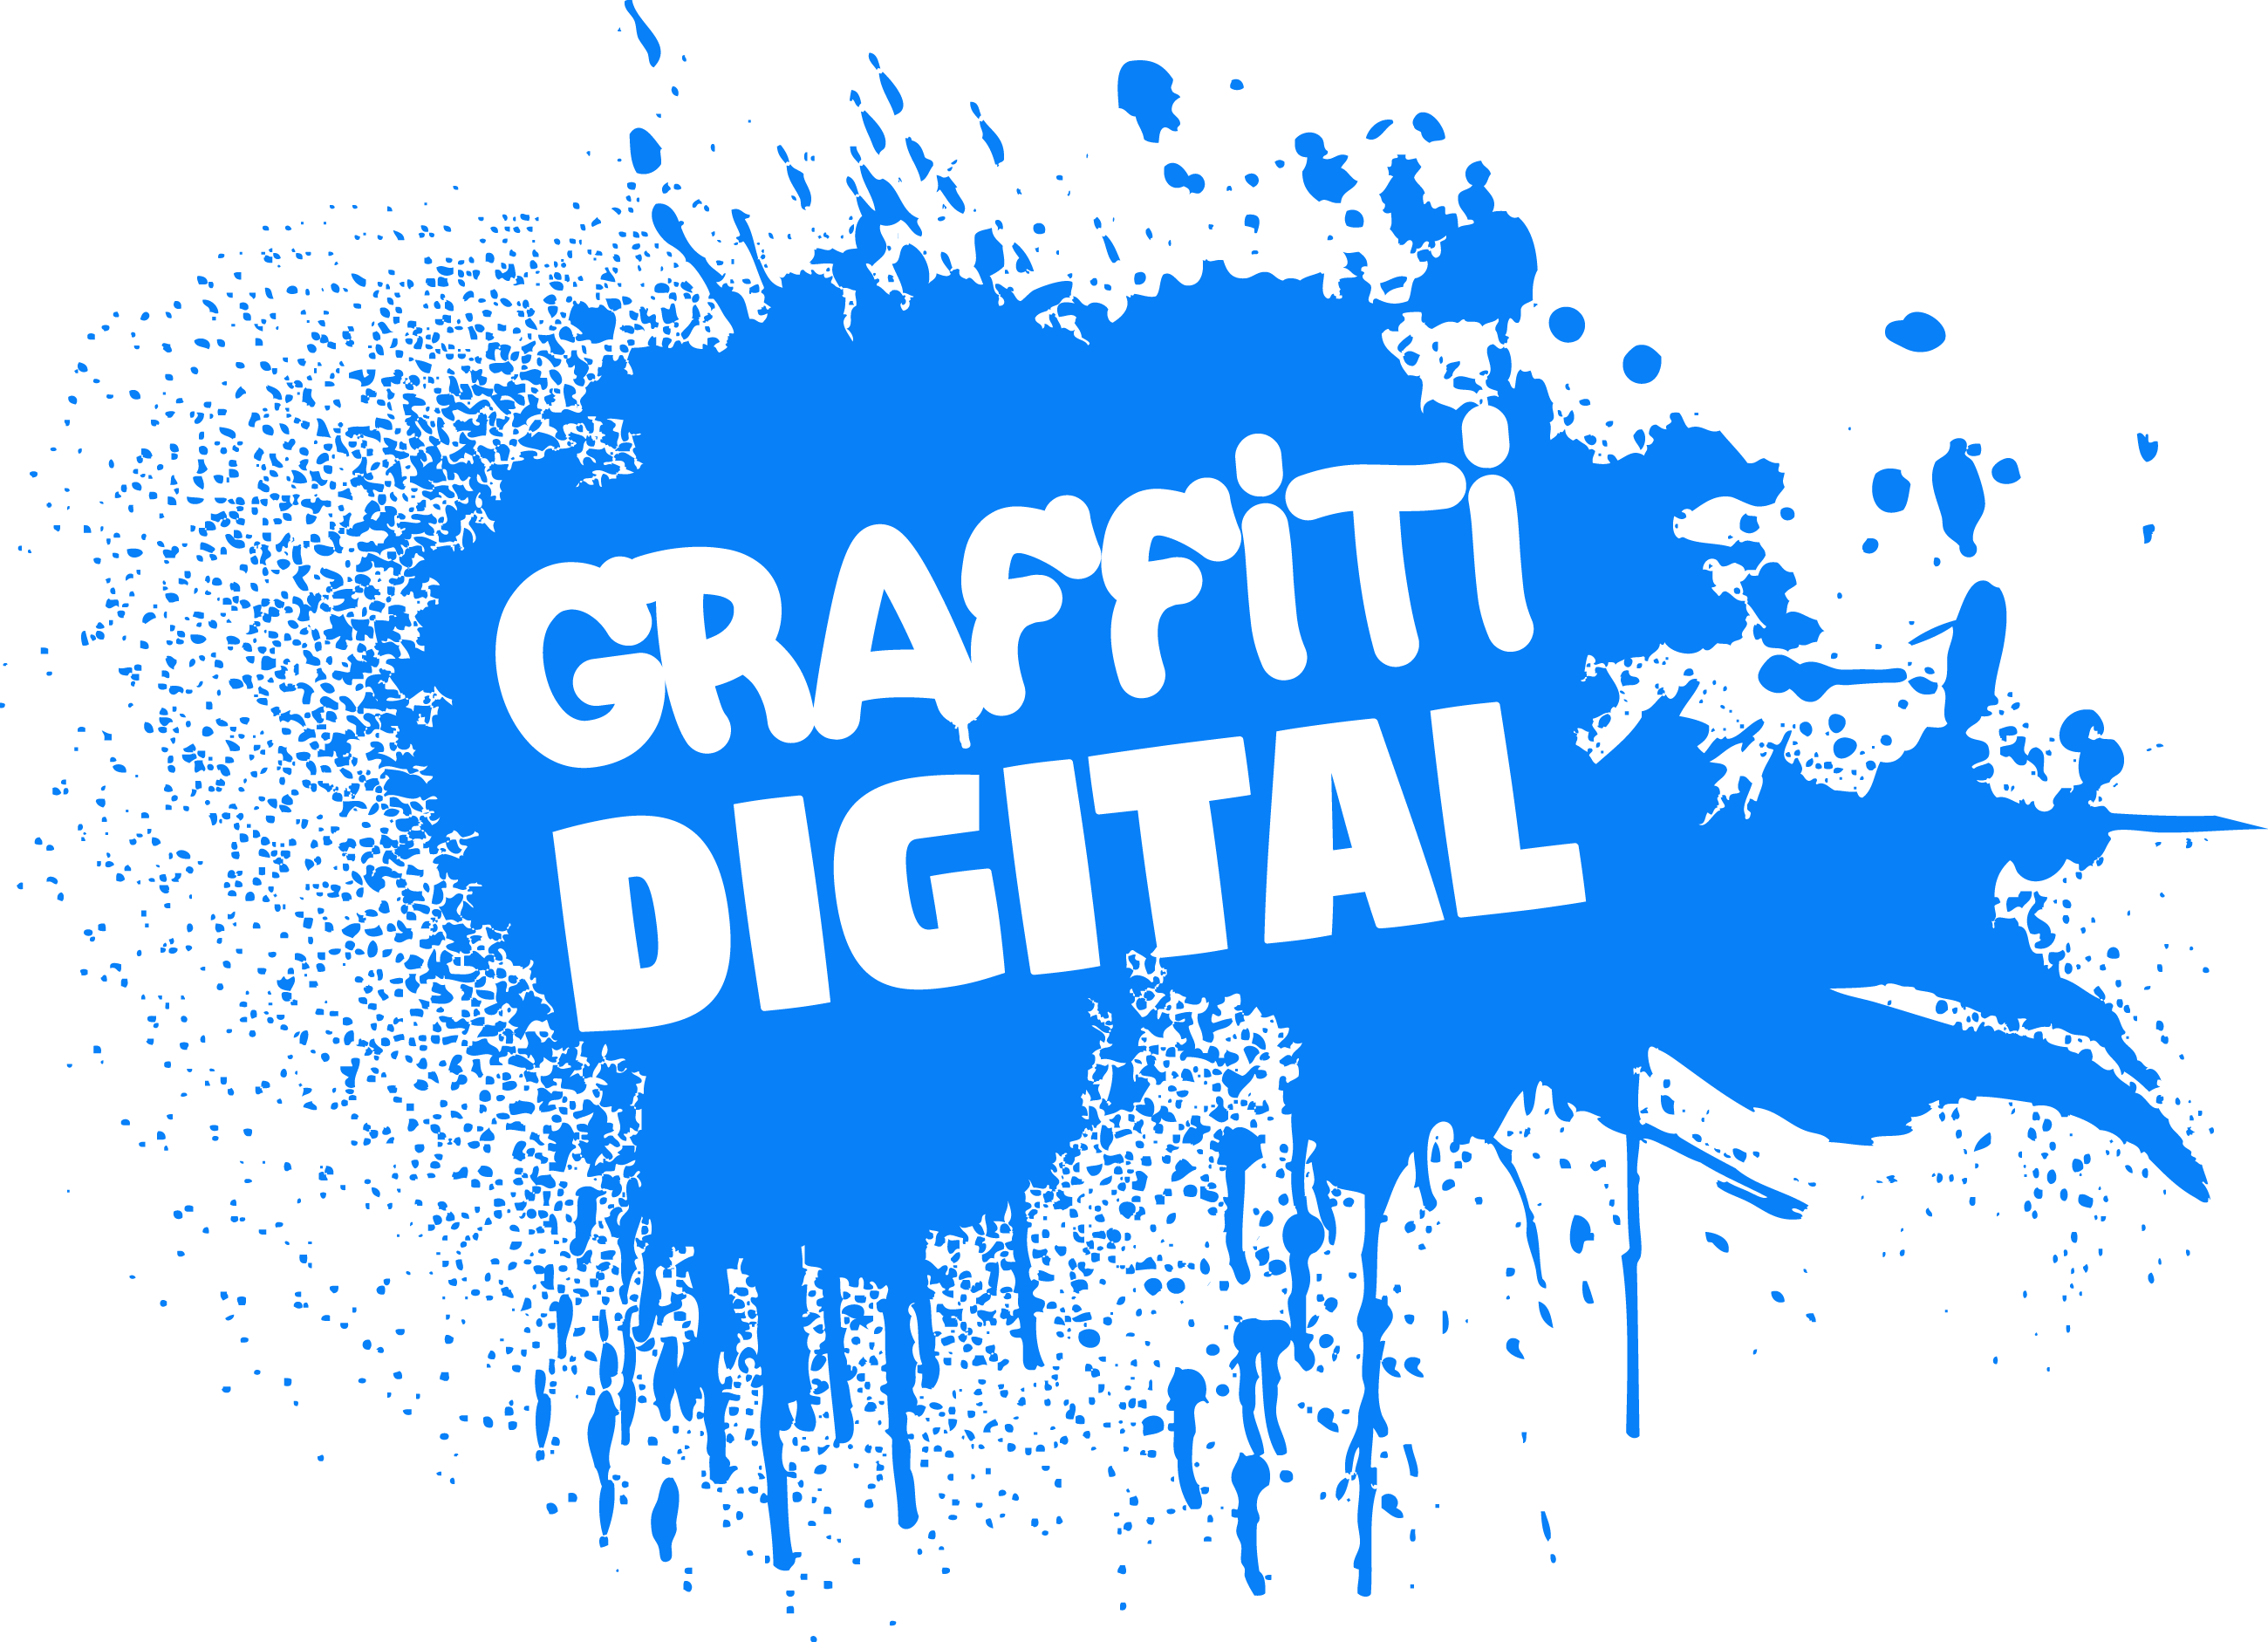 Graffiti Digital ltd Logo